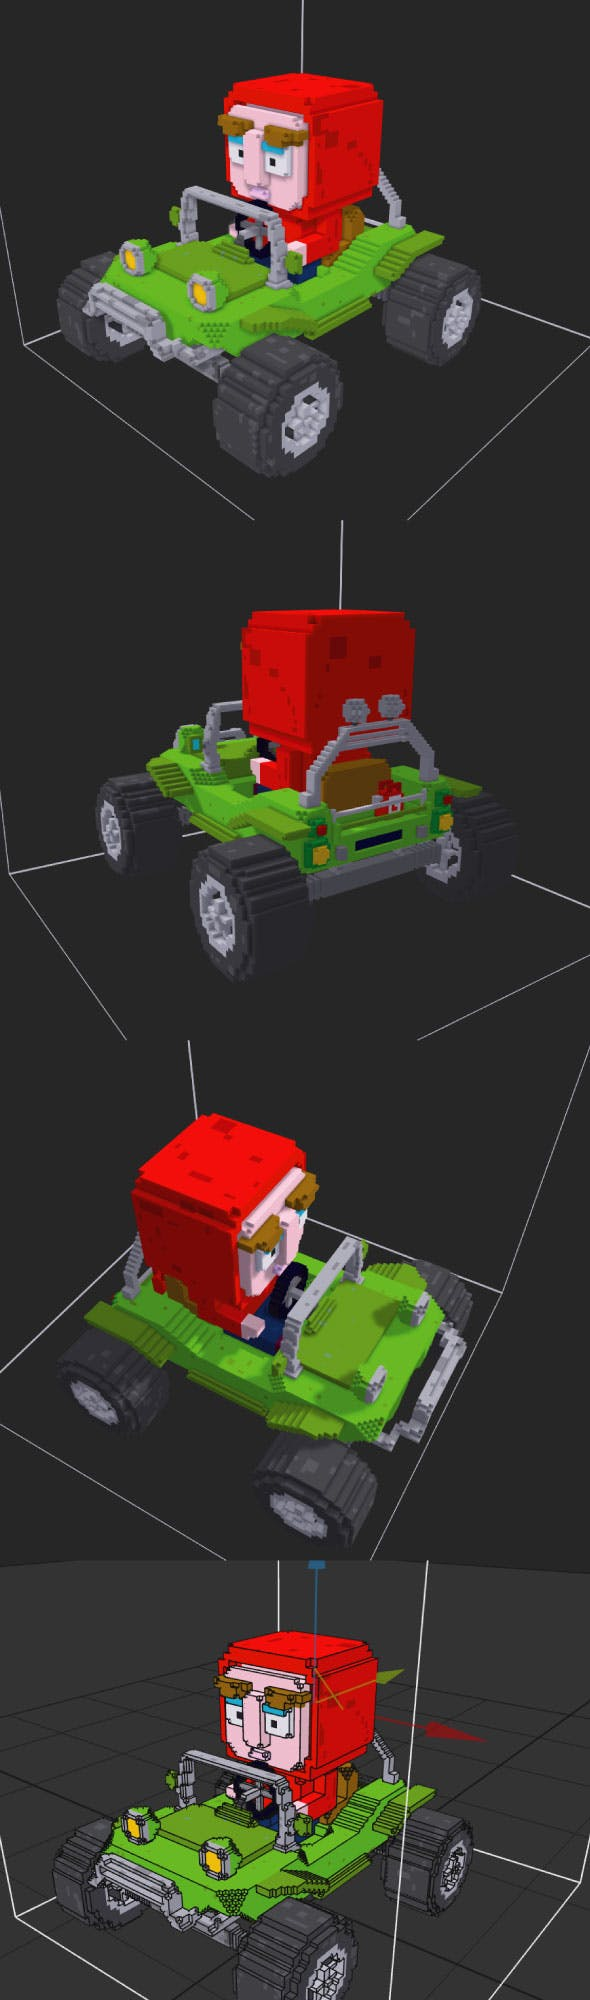 Voxel Buggy Race Car & Character - 3DOcean Item for Sale